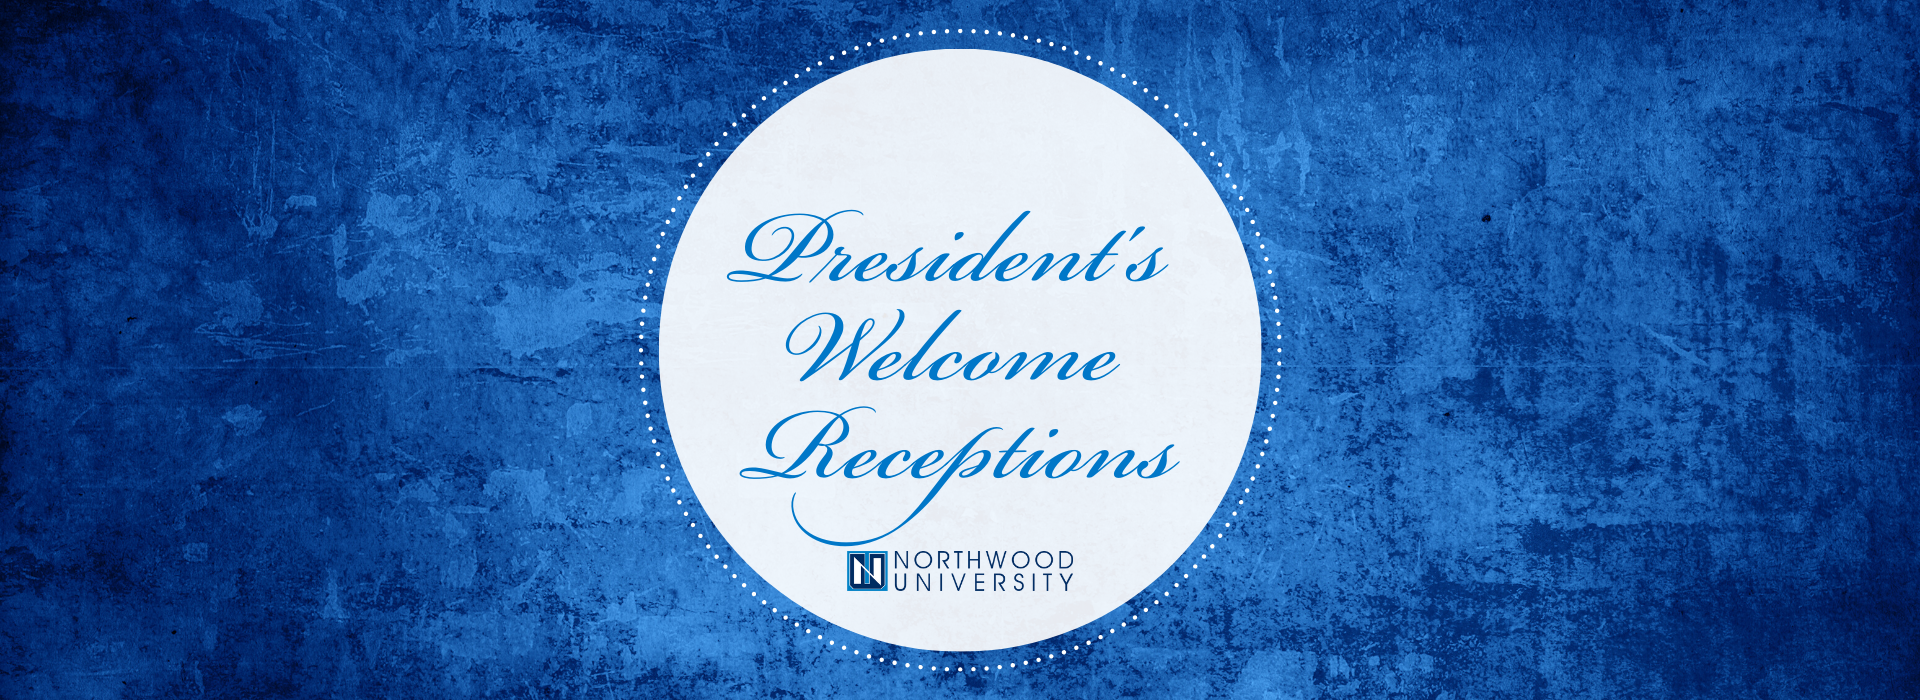 Presidents Welcome Reception